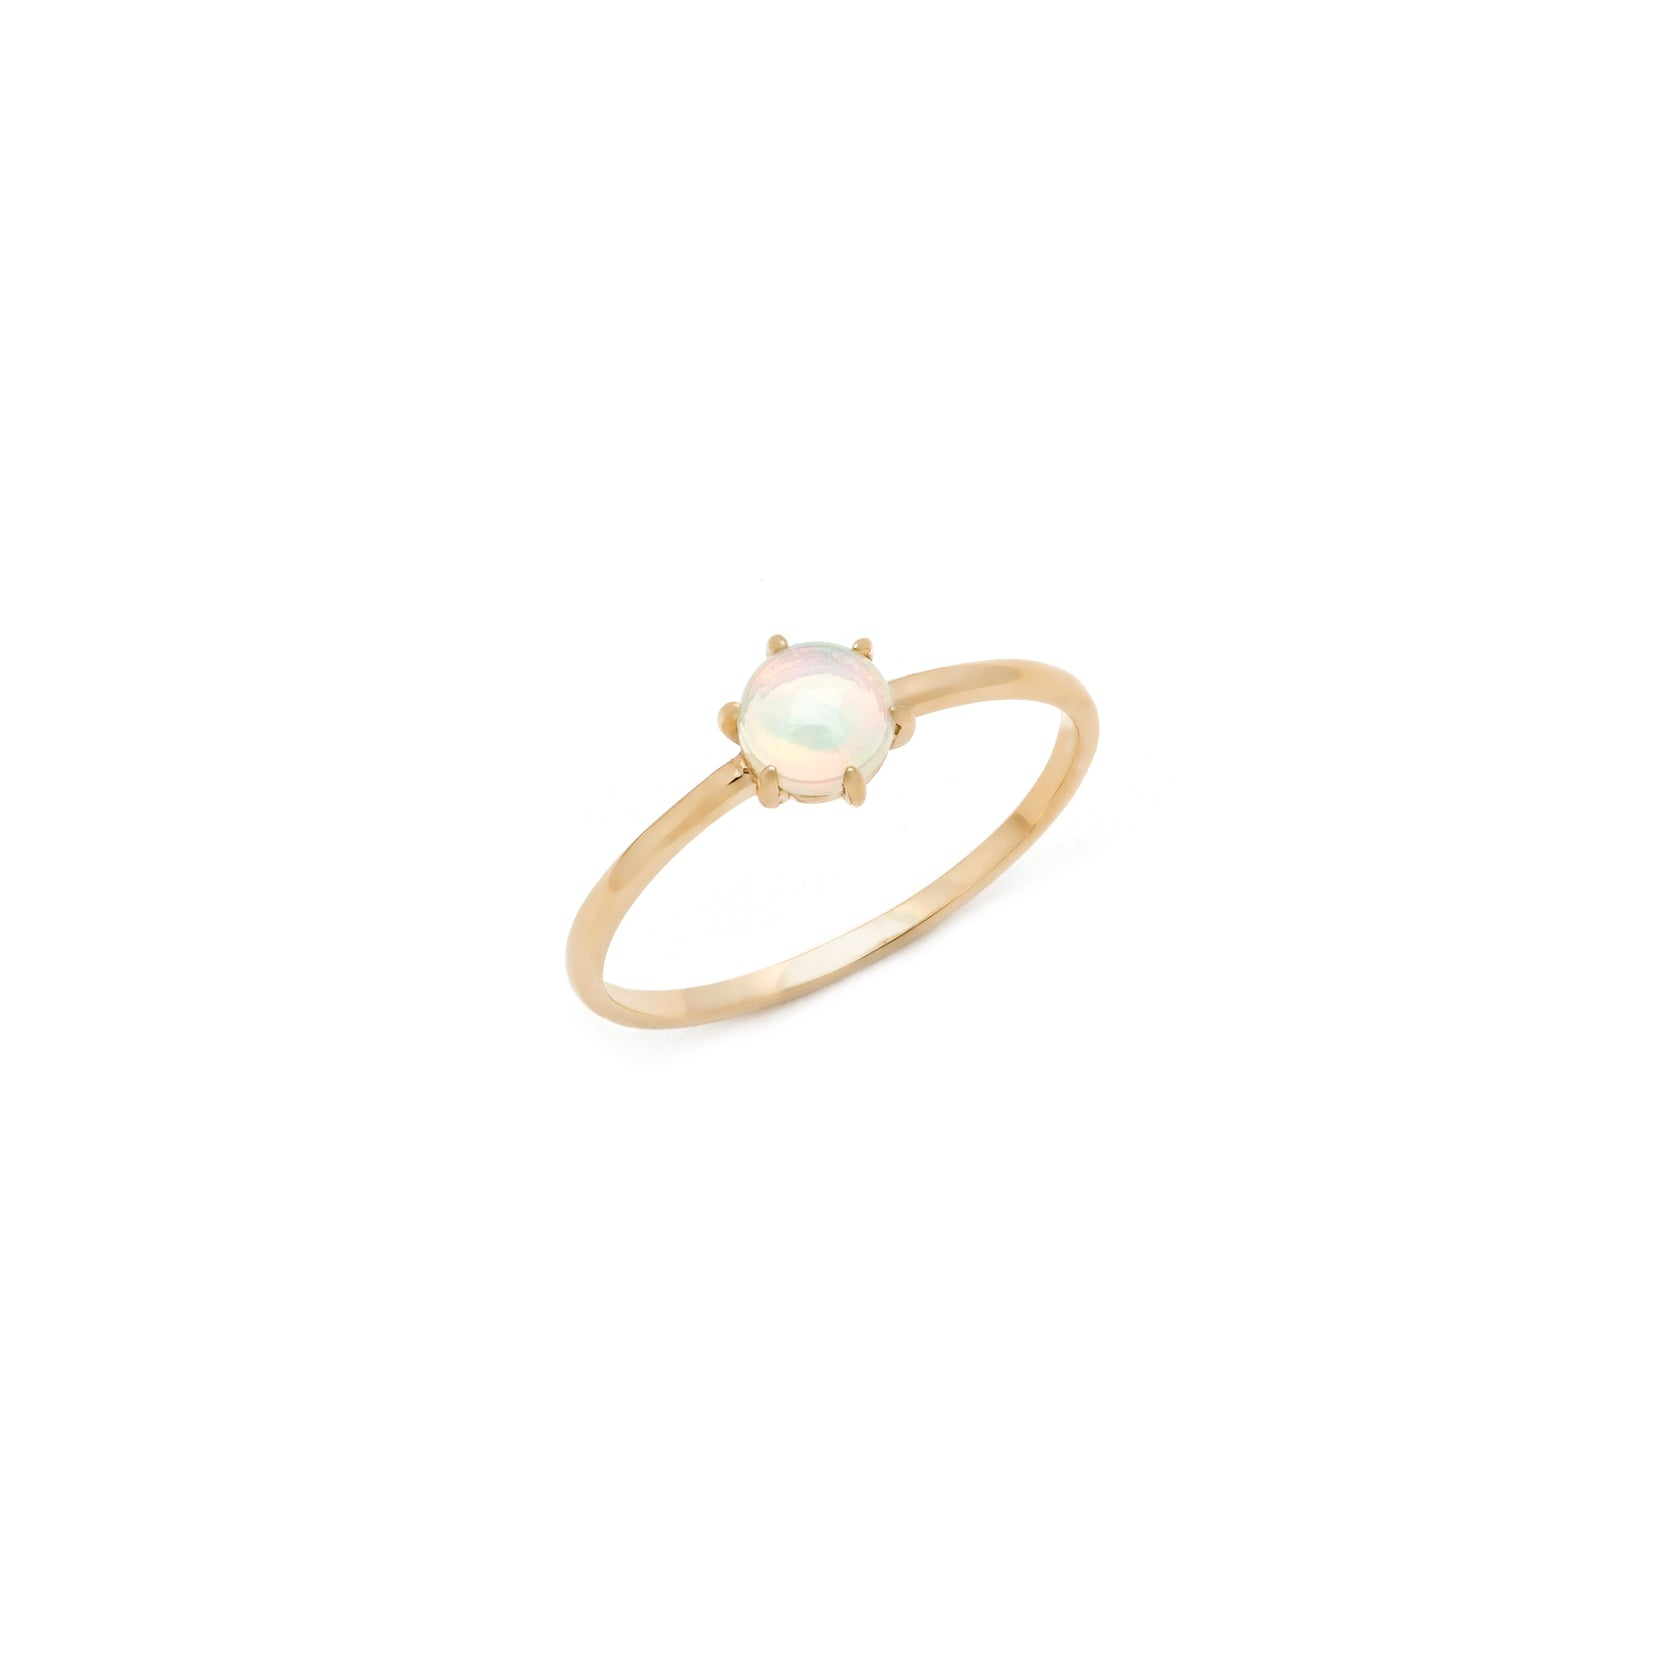 Prong Opal Ring - 14k Solid Gold